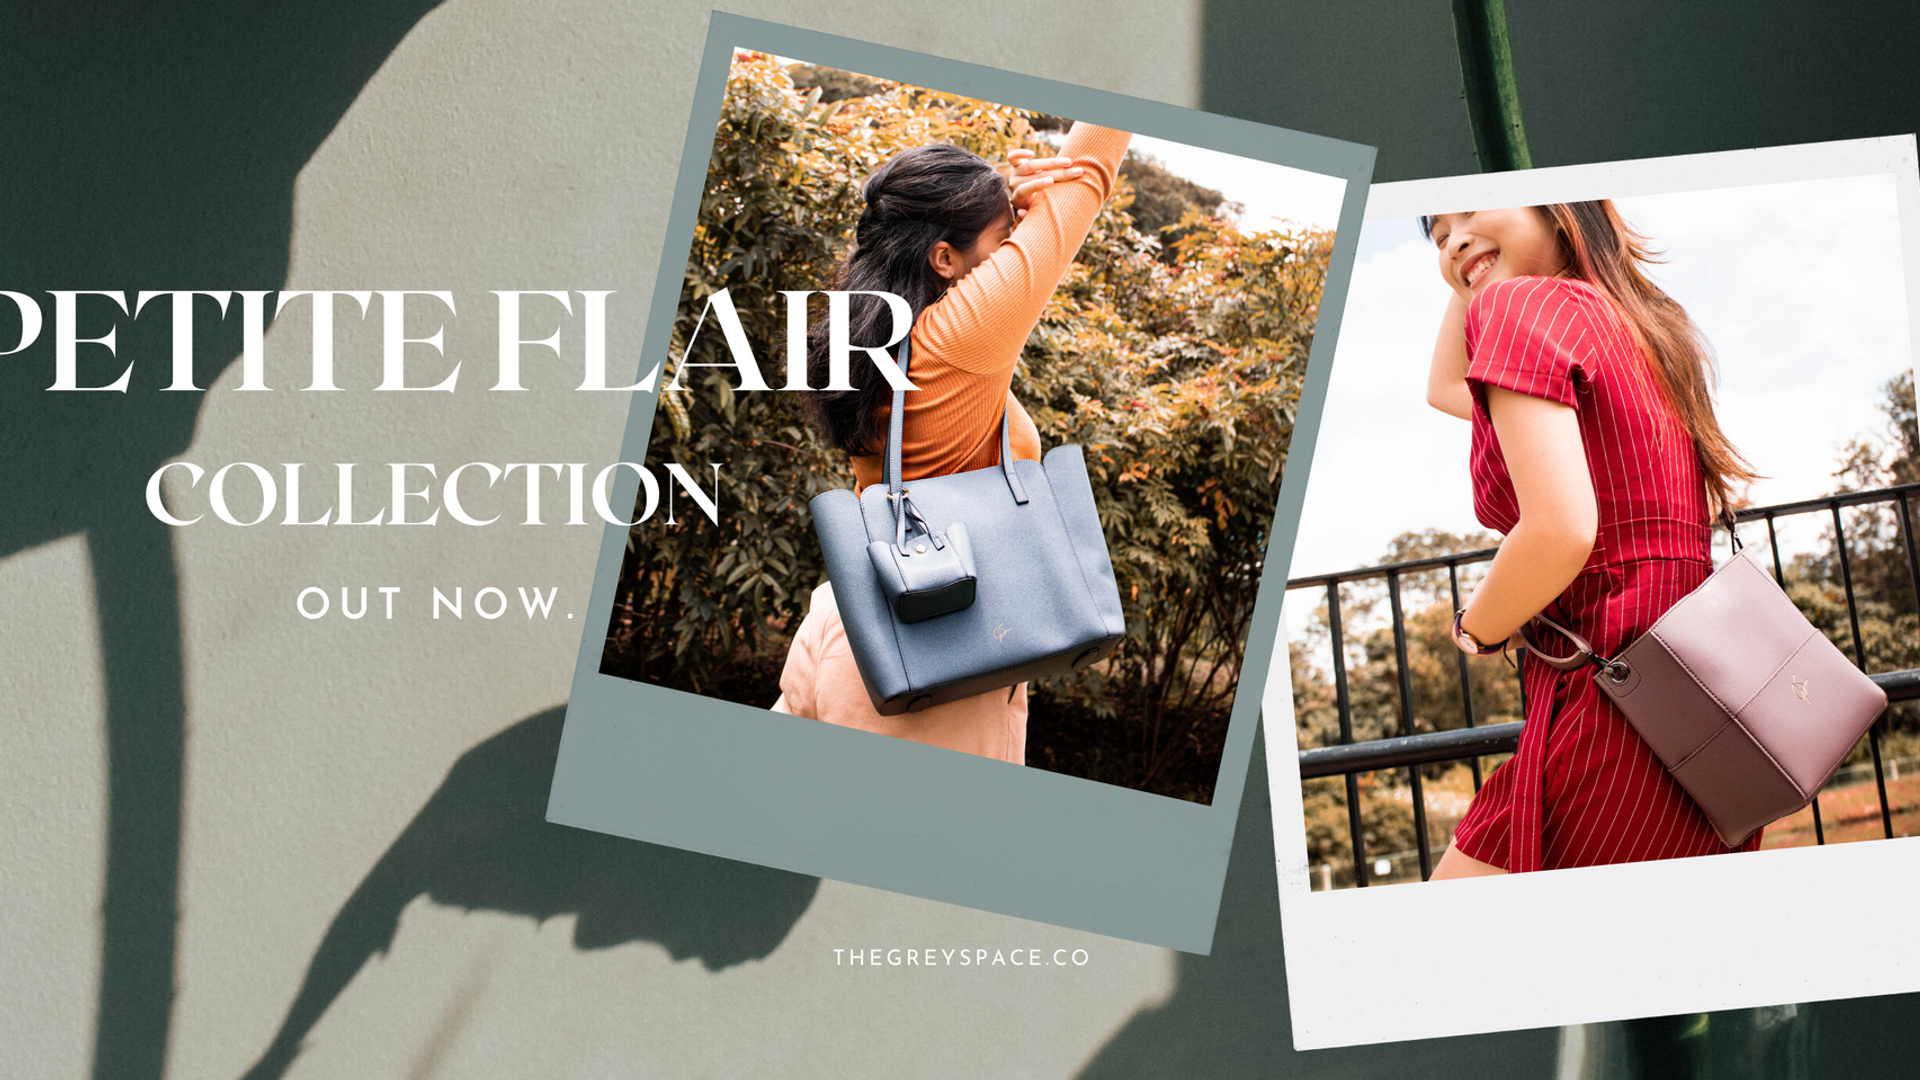 New Arrivals Petite Flair Collection.png